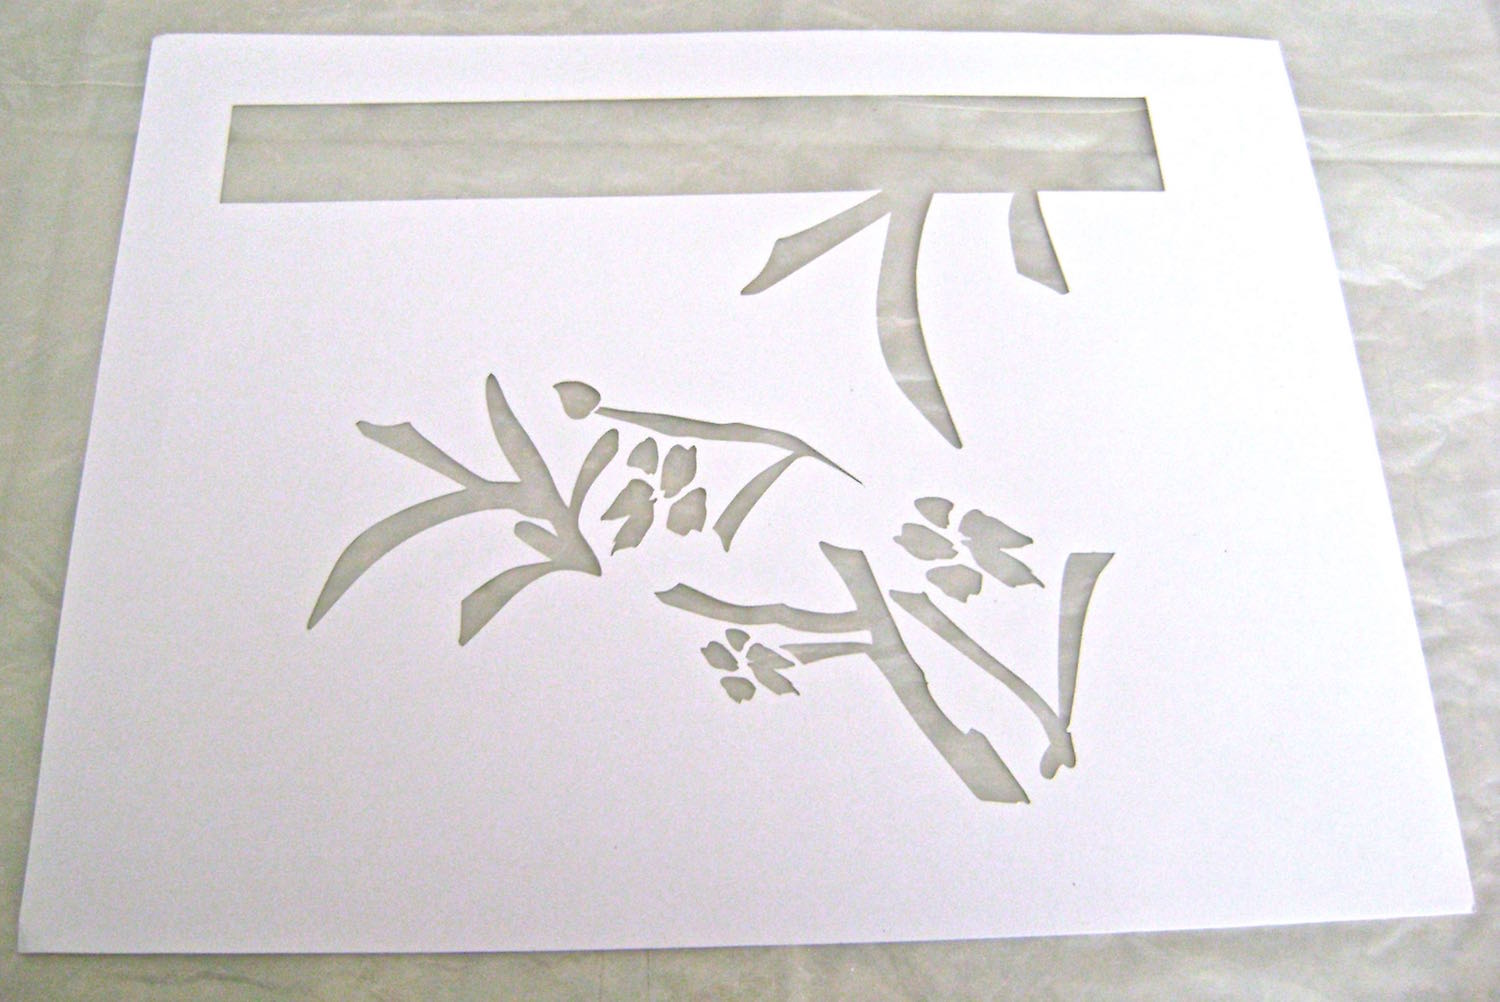 step 1 - Download and print out the flower and stem stencil on a label sheet. Cut out the stencil with a craft knife.